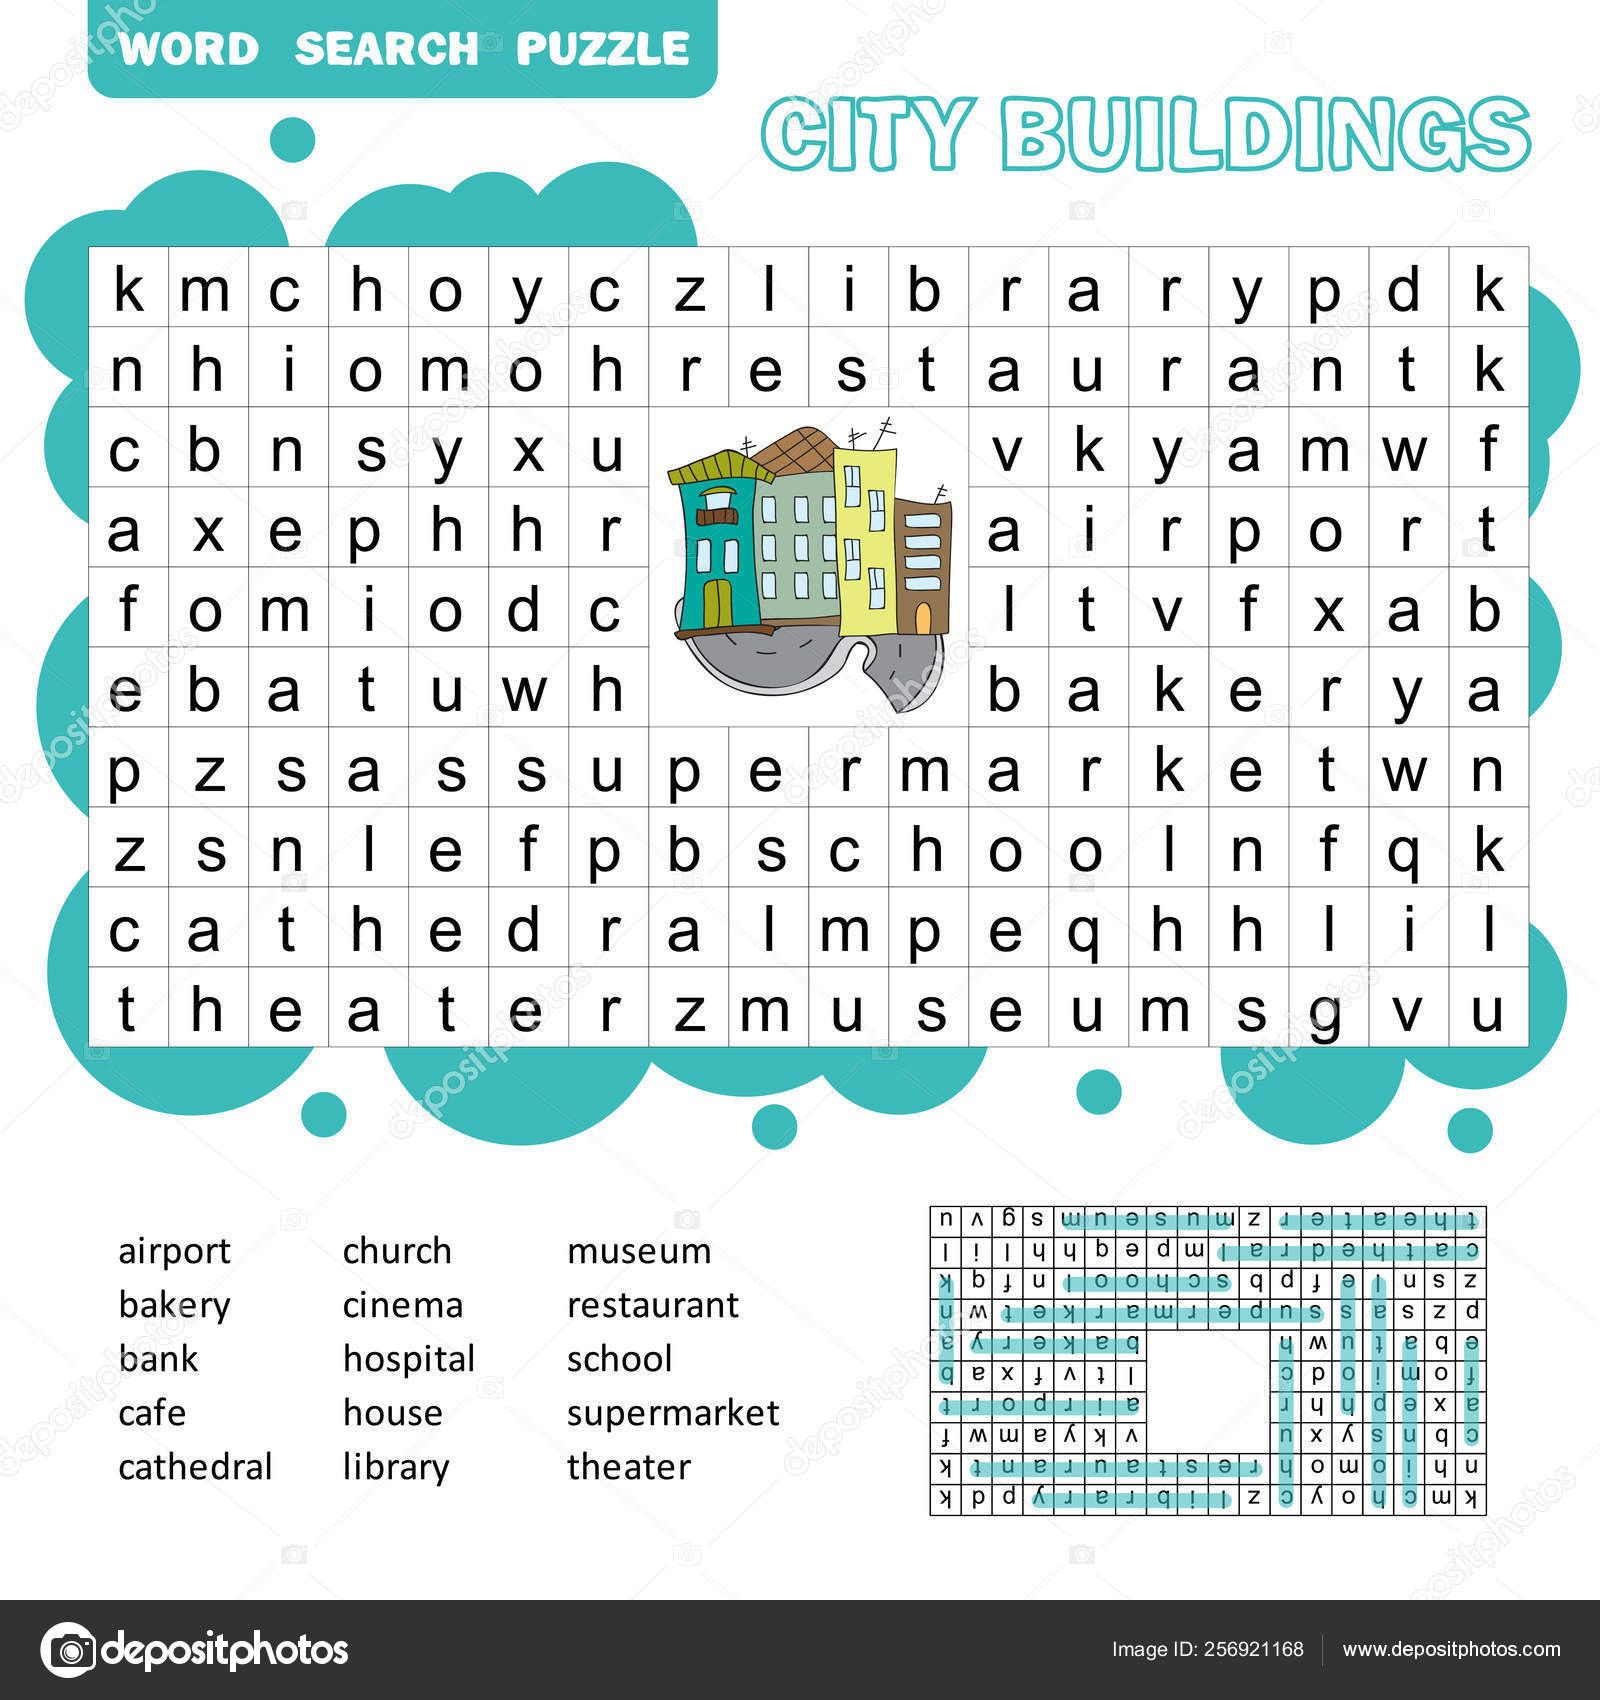 5 Fun Kids Worksheets Search Word Puzzle In